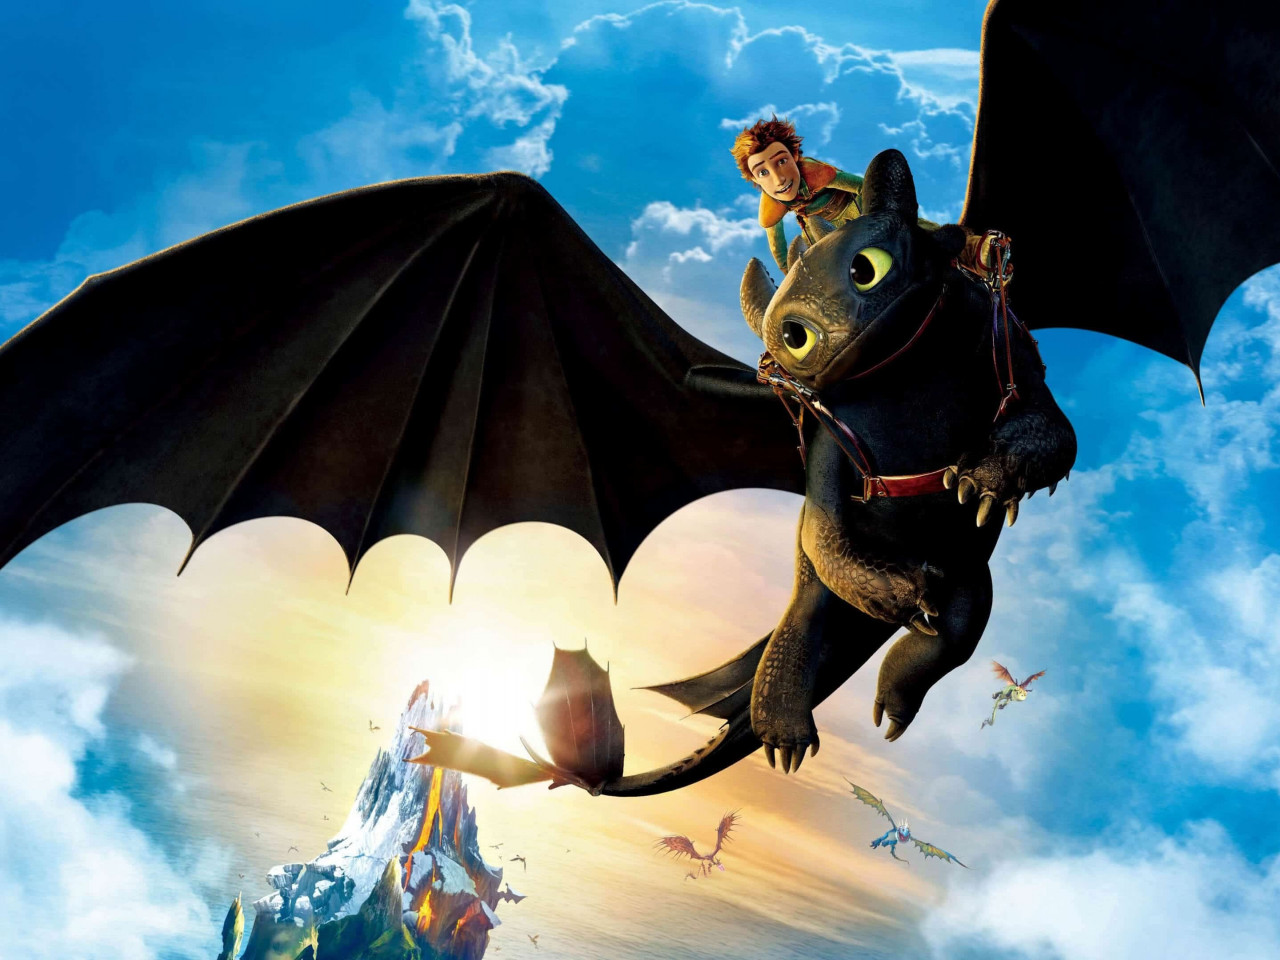 How to Train Your Dragon: The Hidden World | 1280x960 wallpaper